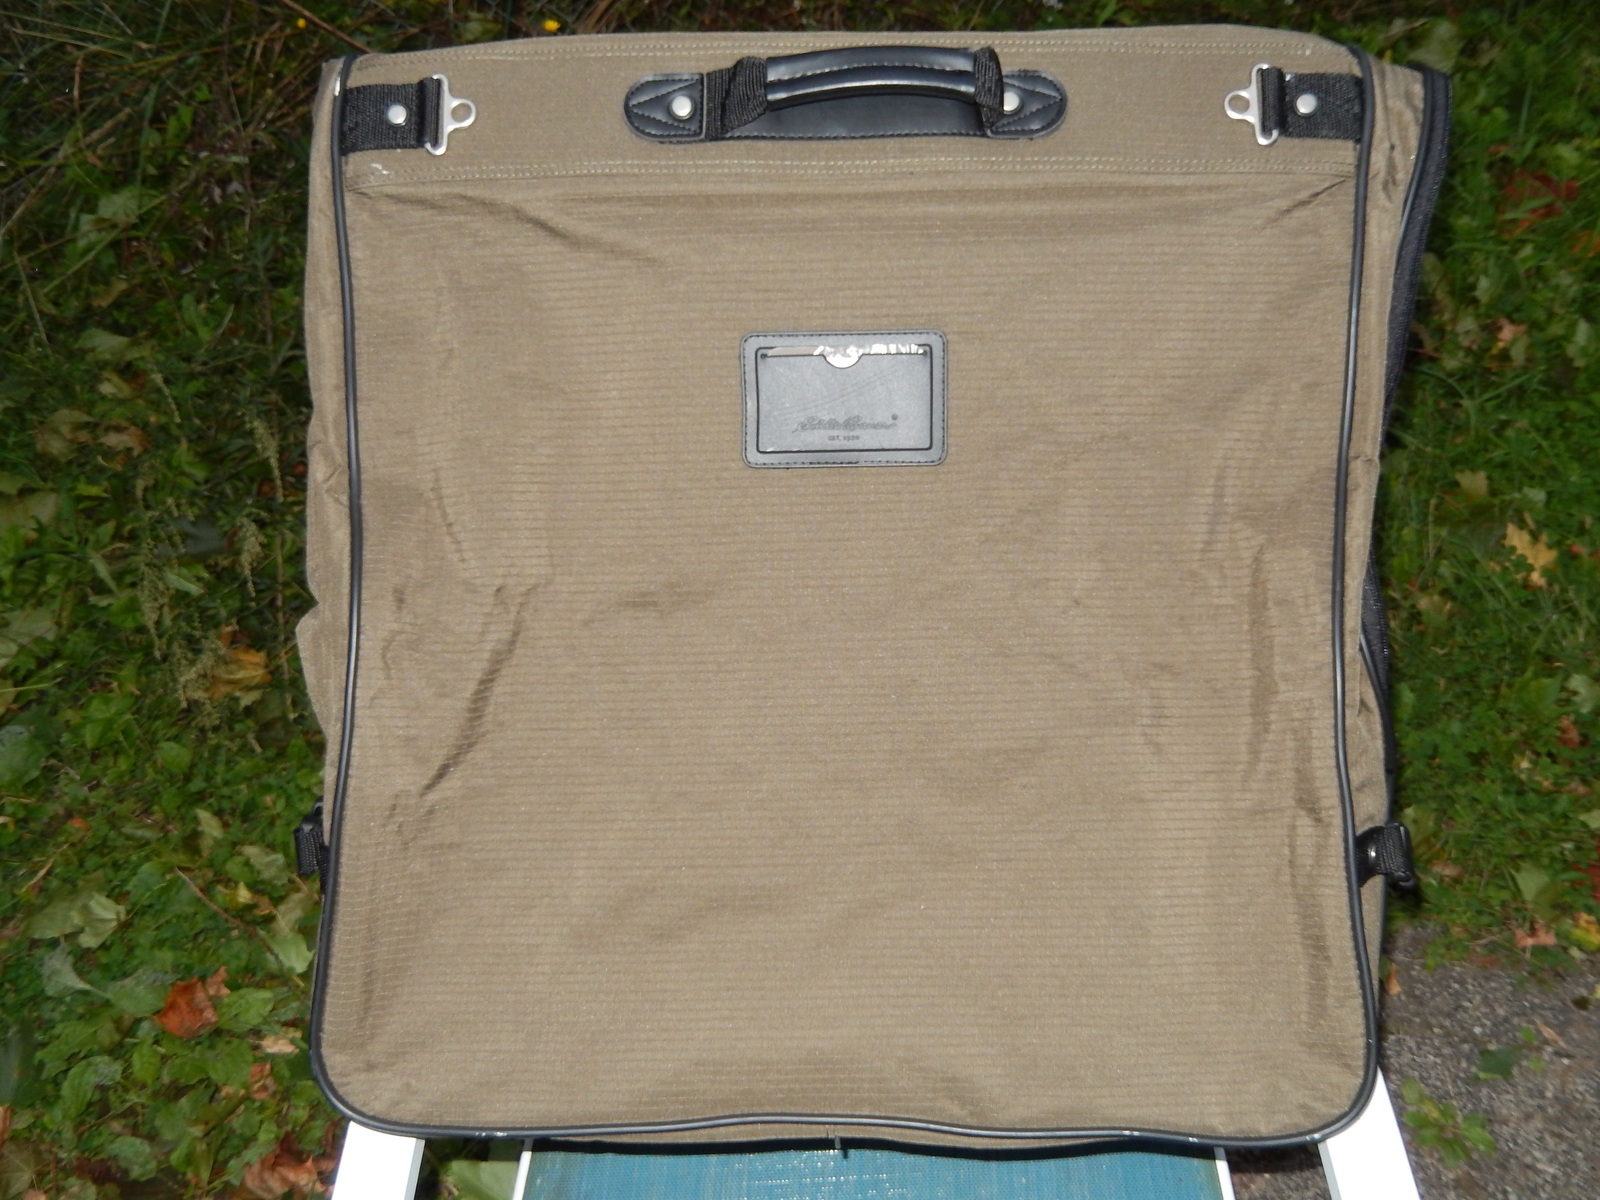 Eddie Bauer Suit Carrier